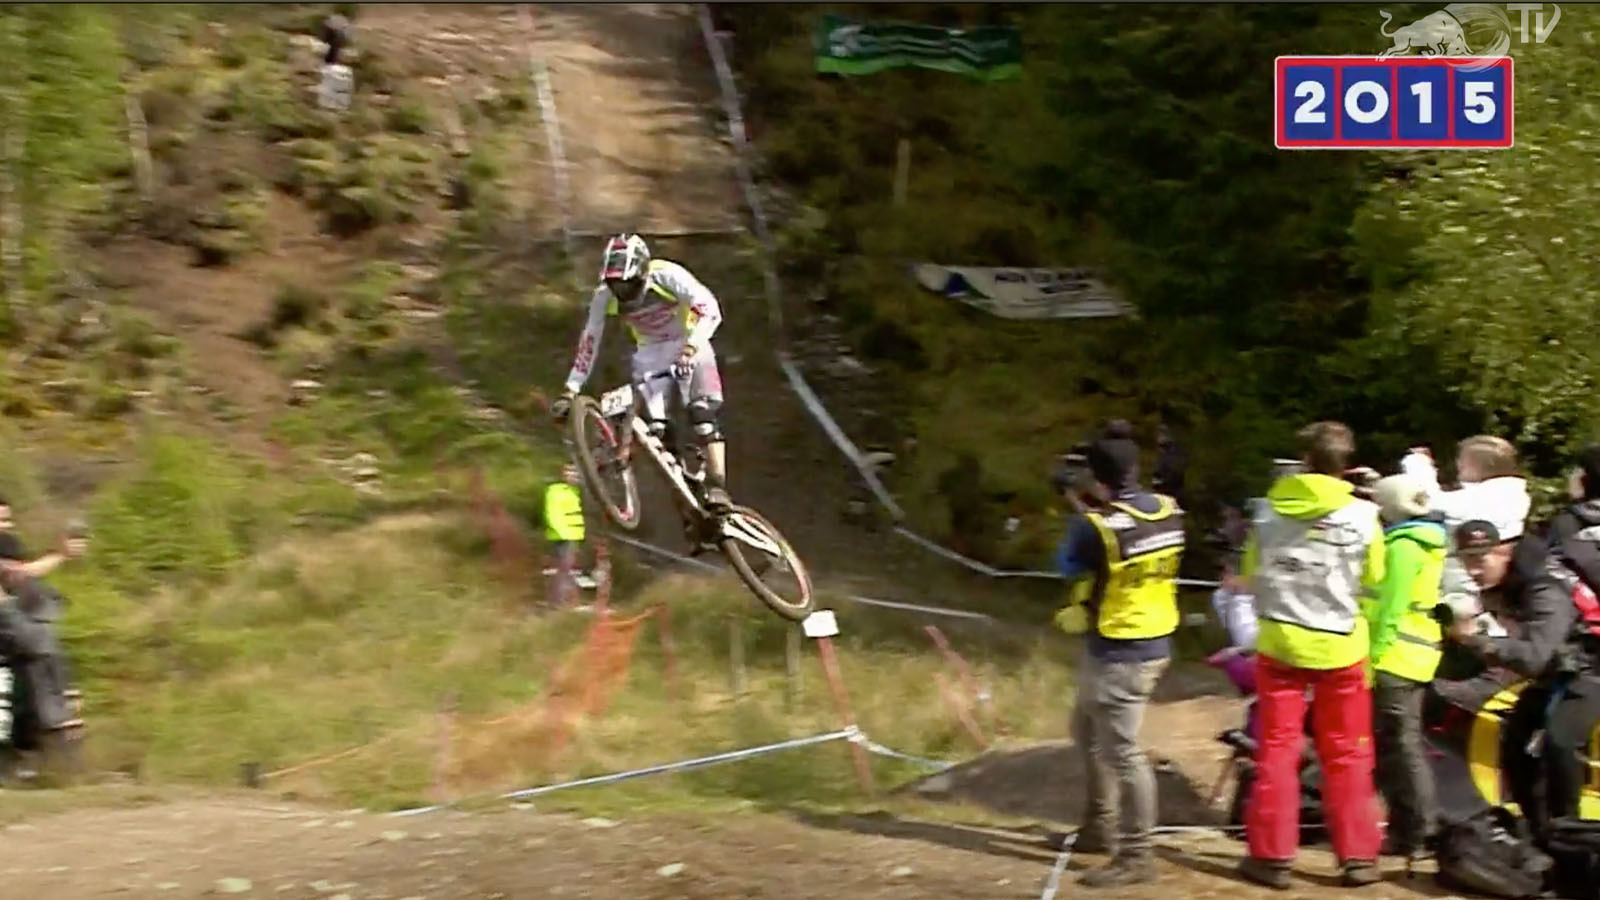 Who Can Claim Fastest at Fort William? Red Bull Presents a Decade of Racing